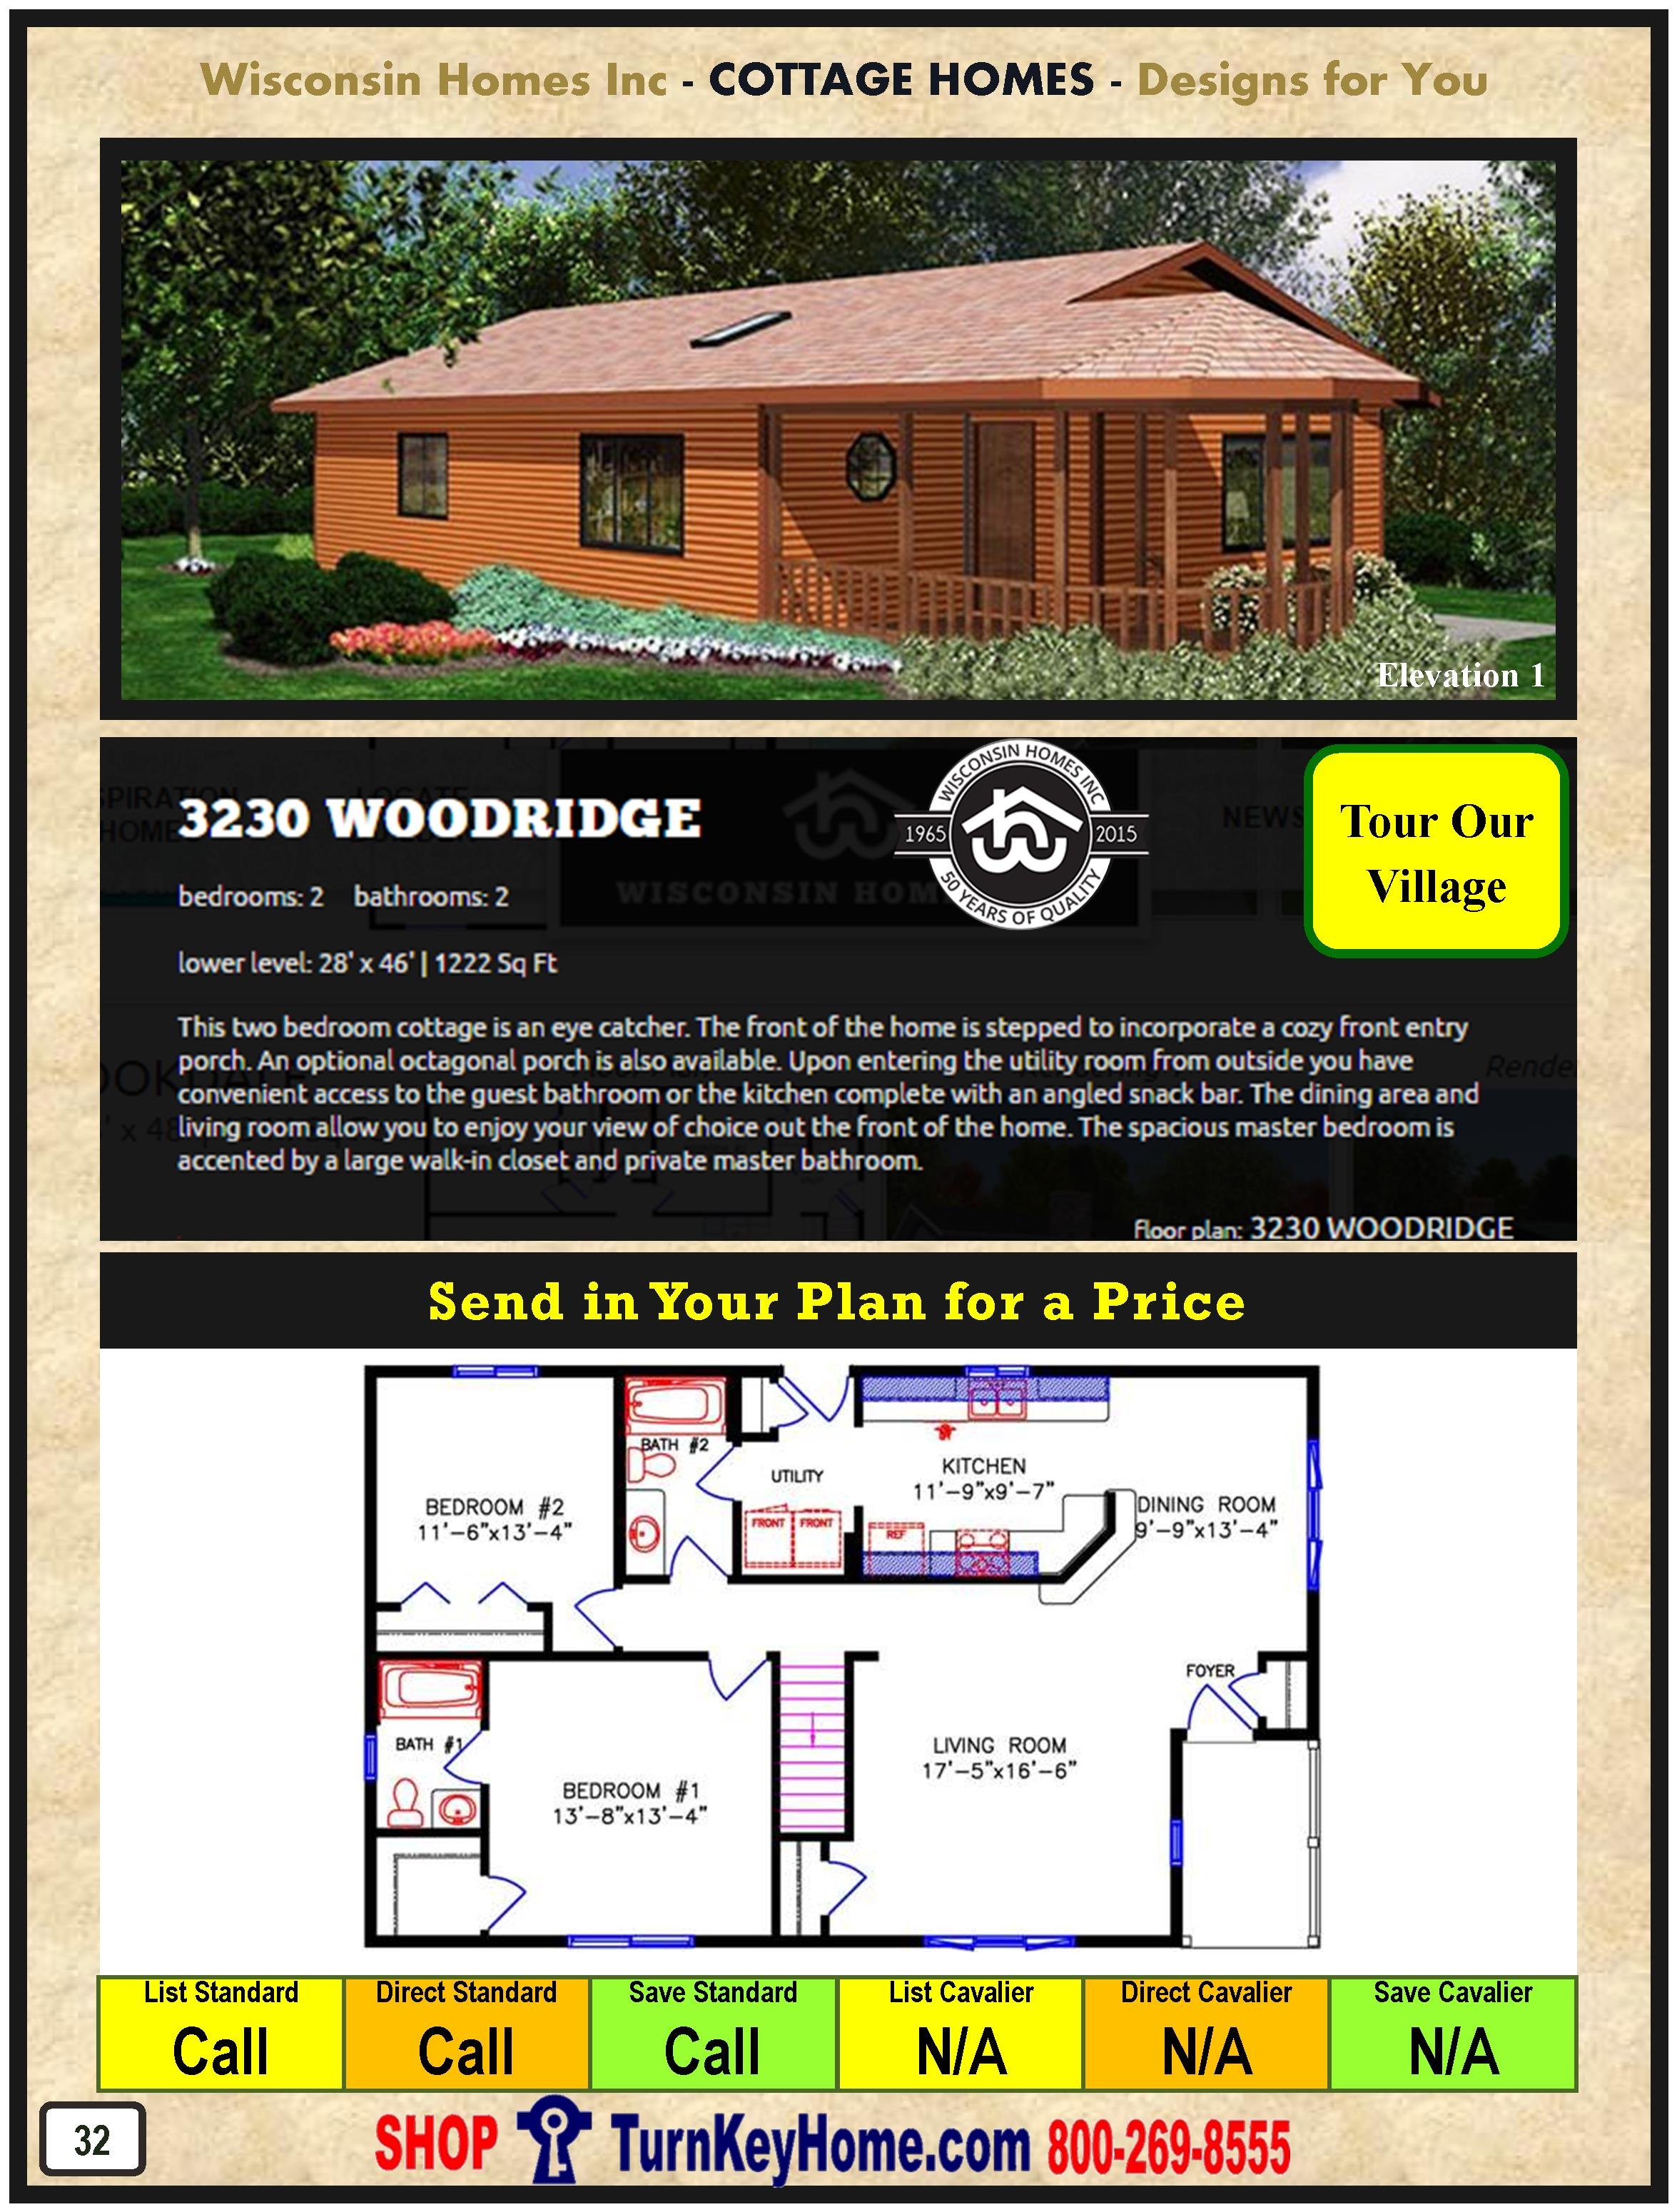 Cottage Modular Home Prices FROM Wisconsin Homes Inc Cottage and ...